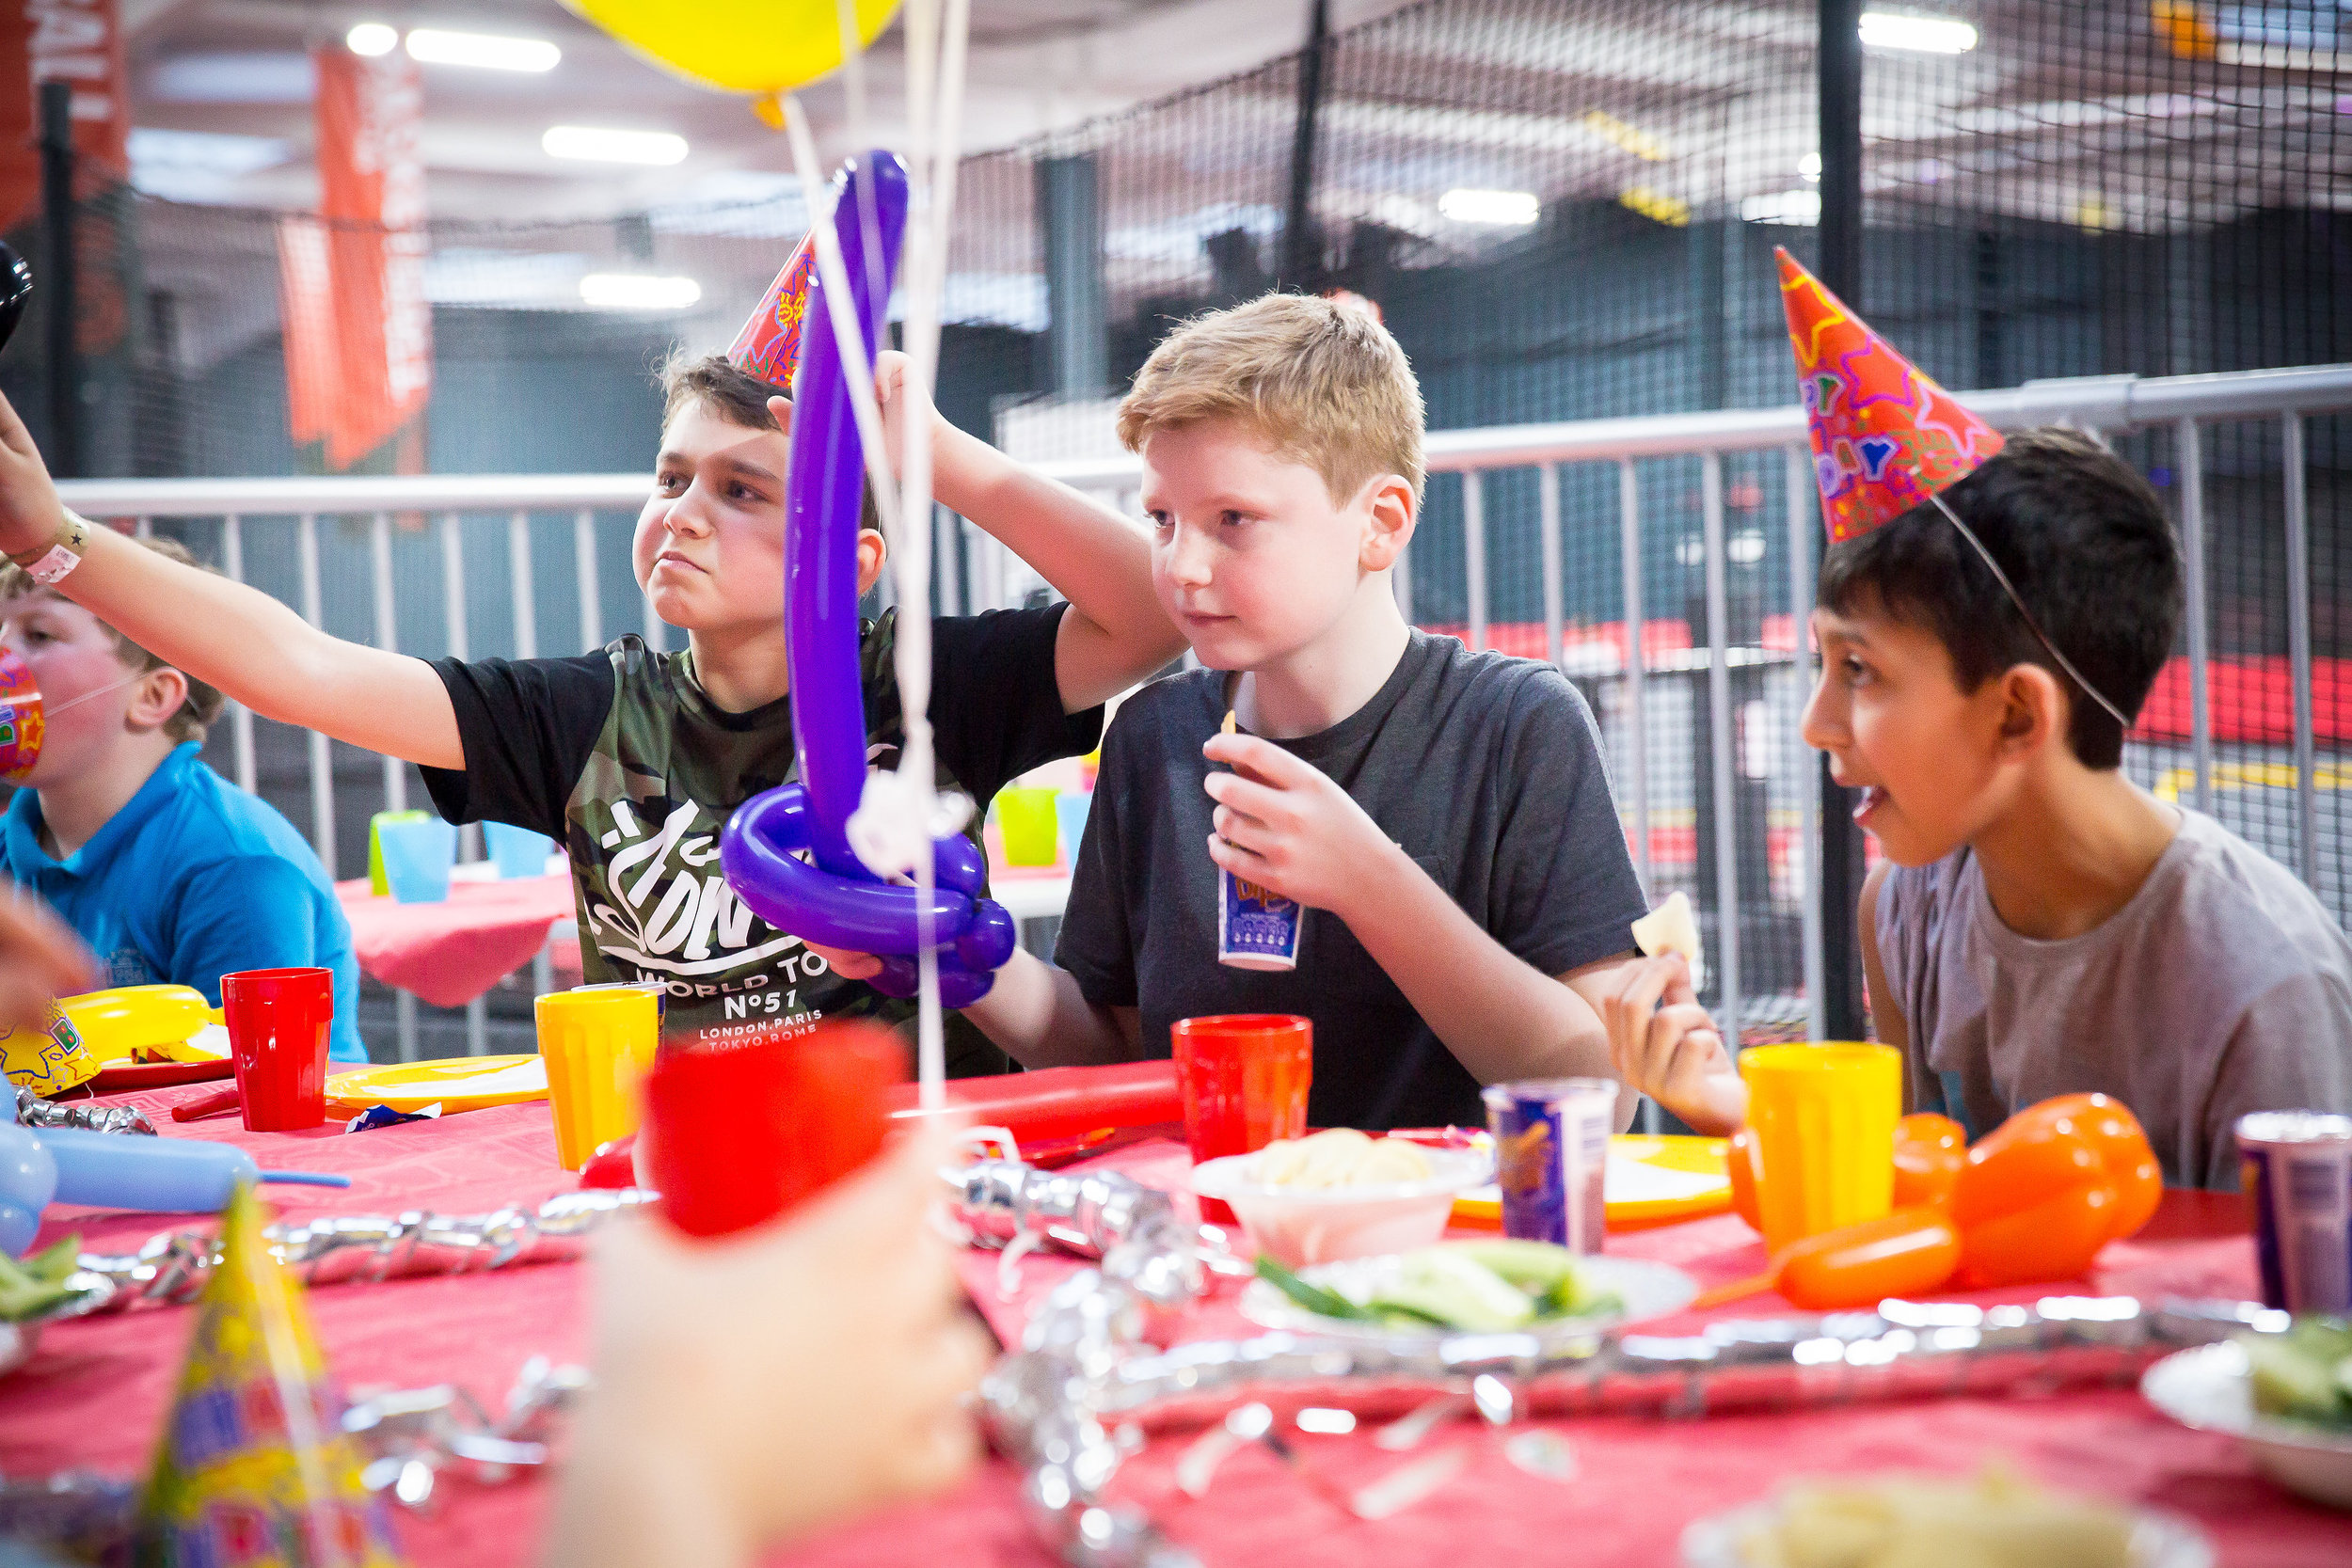 A fantastic party at our essex trampoline park